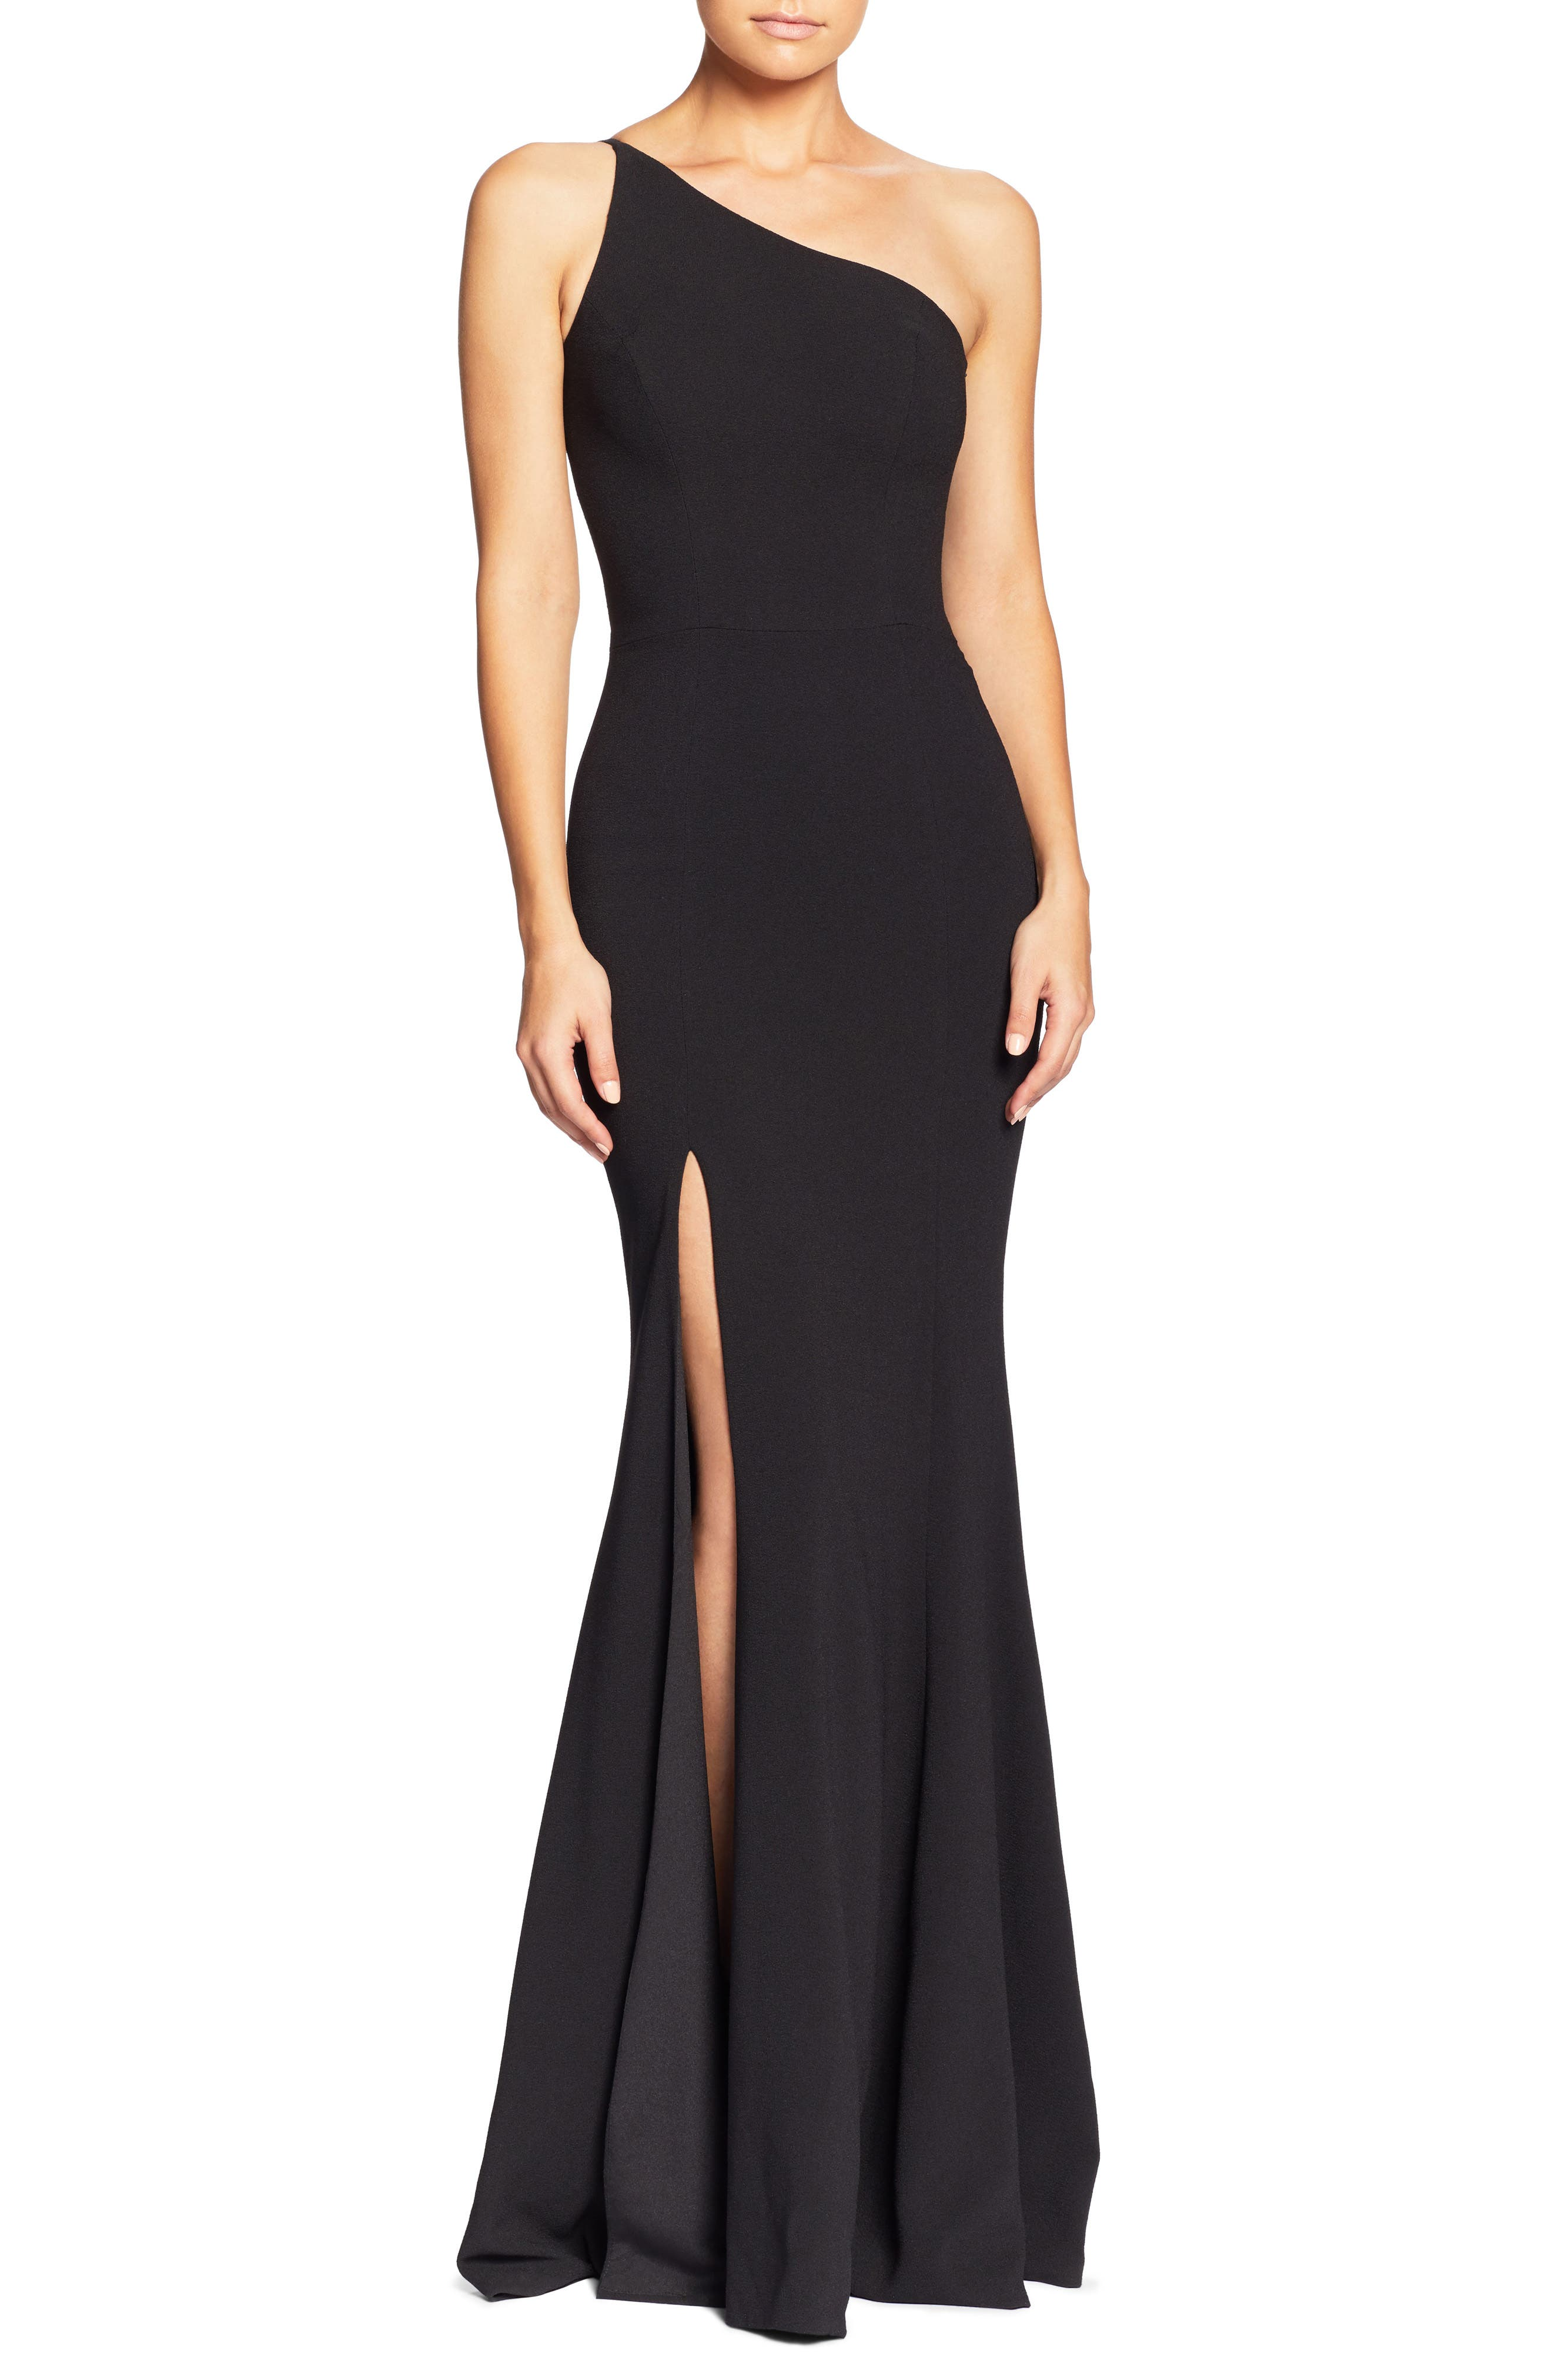 DRESS THE POPULATION,                             Amy One-Shoulder Crepe Gown,                             Main thumbnail 1, color,                             001